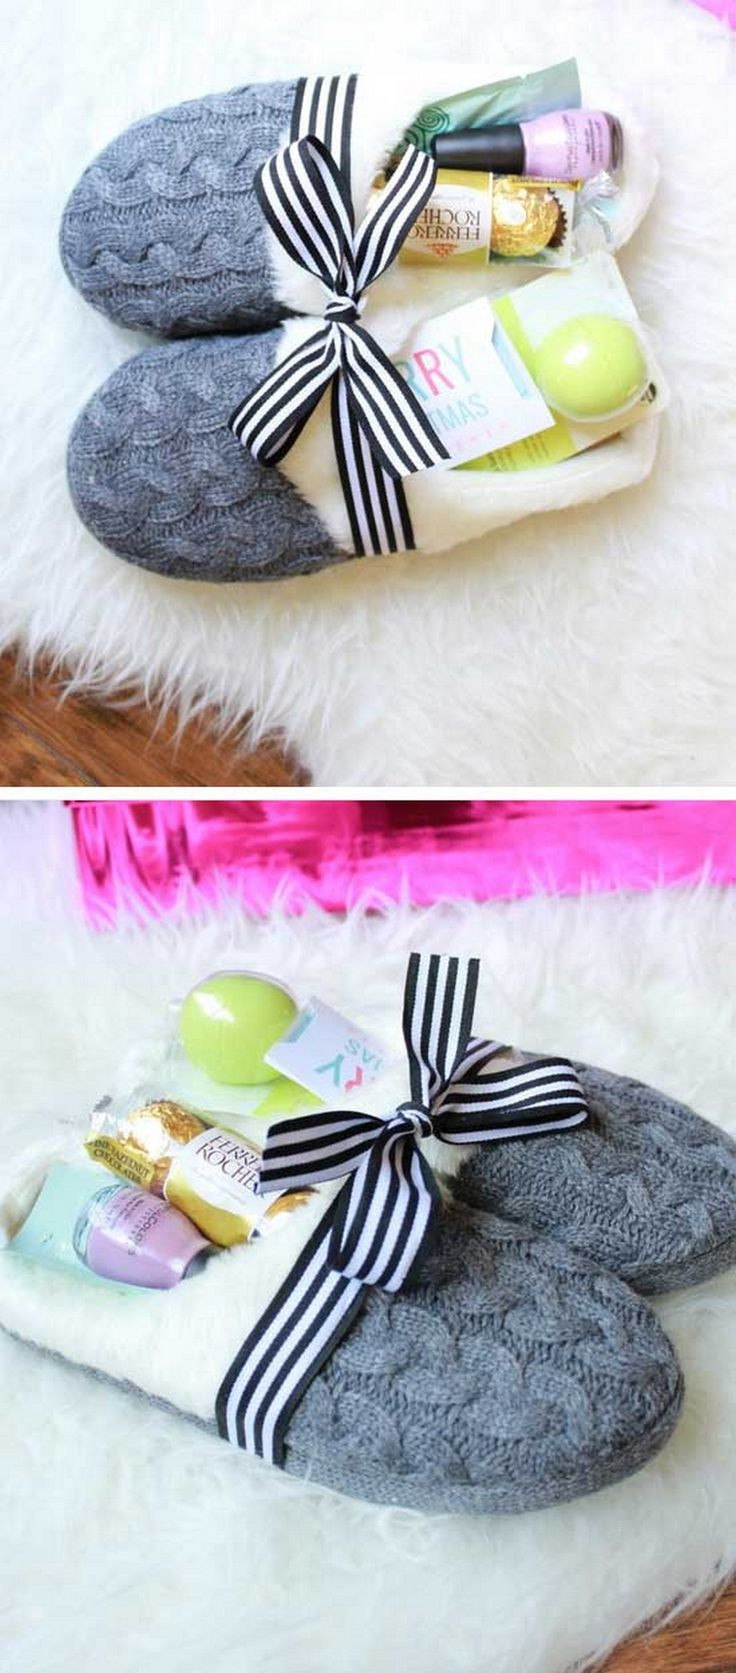 Best ideas about Christmas Gift Ideas For Friends . Save or Pin Best 25 Diy best friend ts ideas on Pinterest Now.